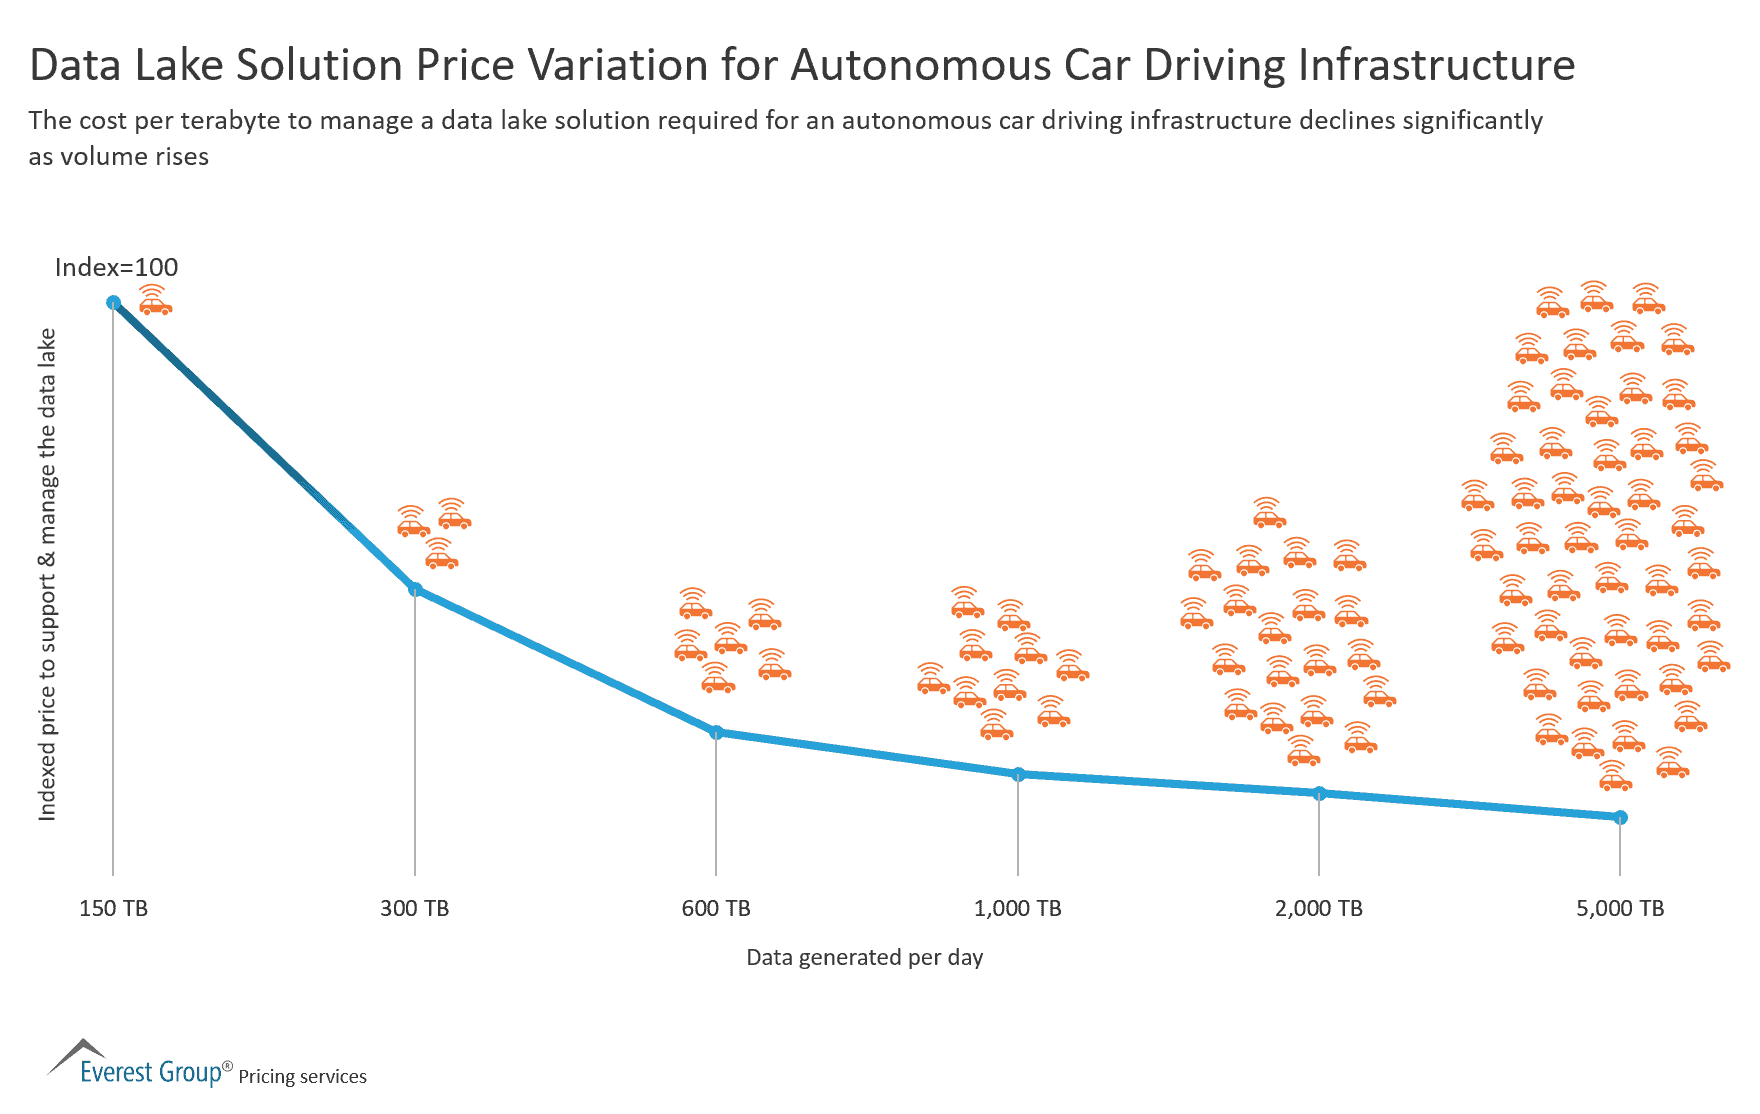 Data Lake Solution Price Variation for Autonomous Car Driving Infrastructure